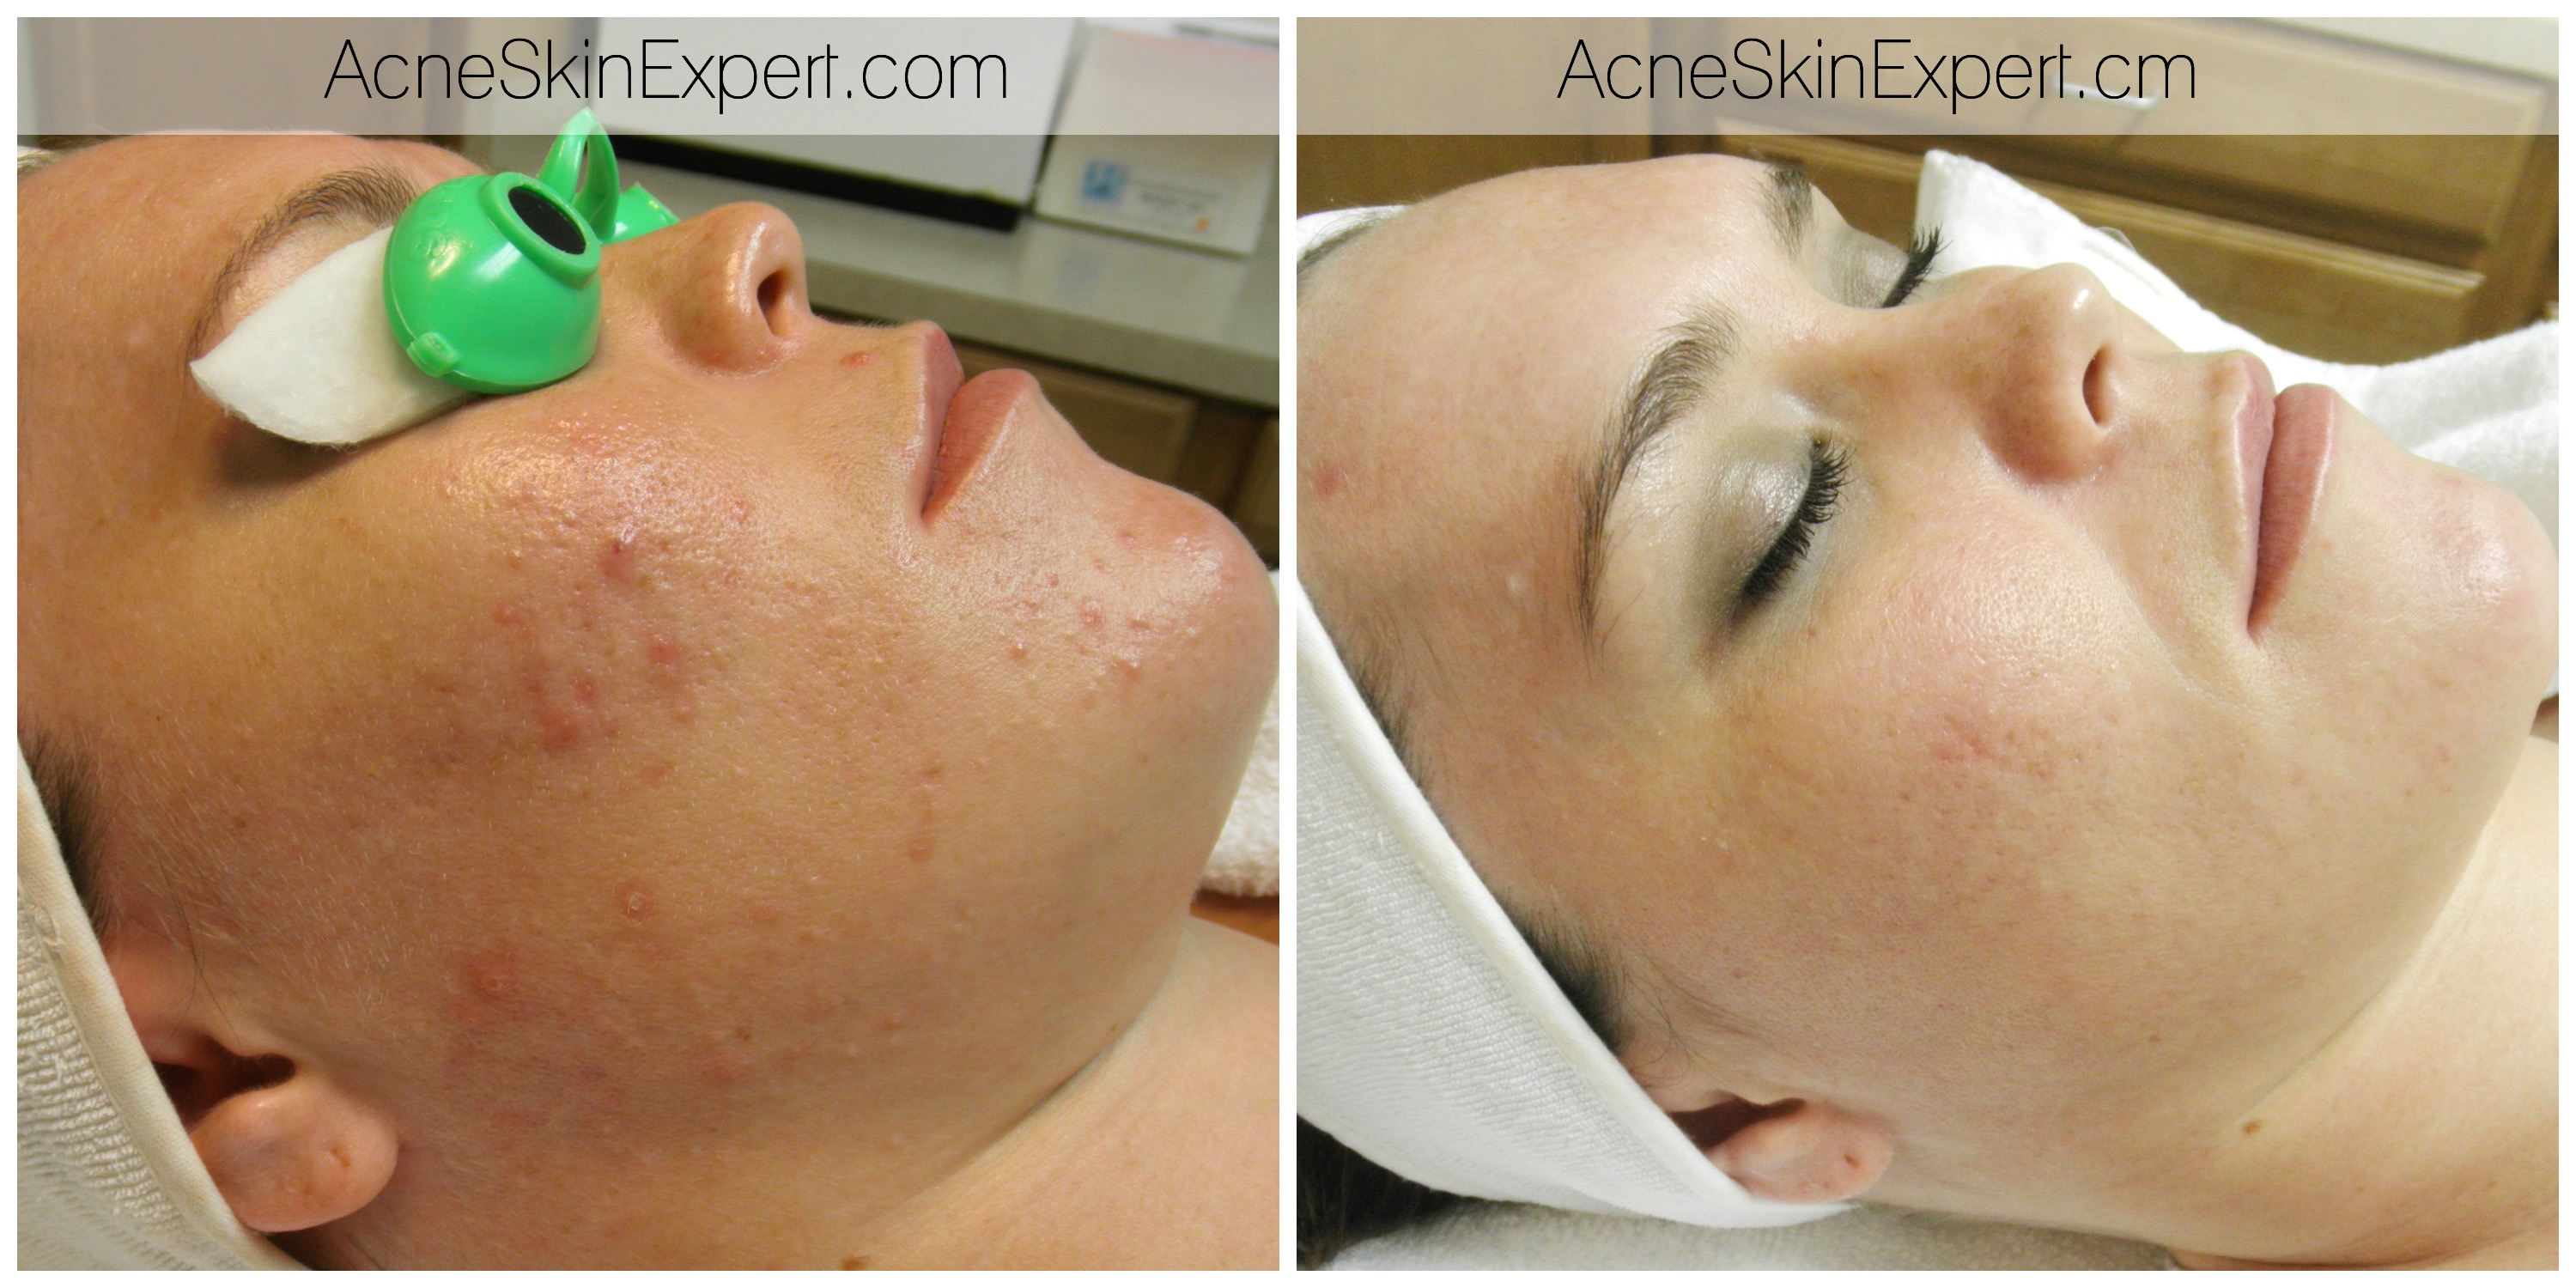 acne-treatment-oily-combination-AcneSkinExpert.com